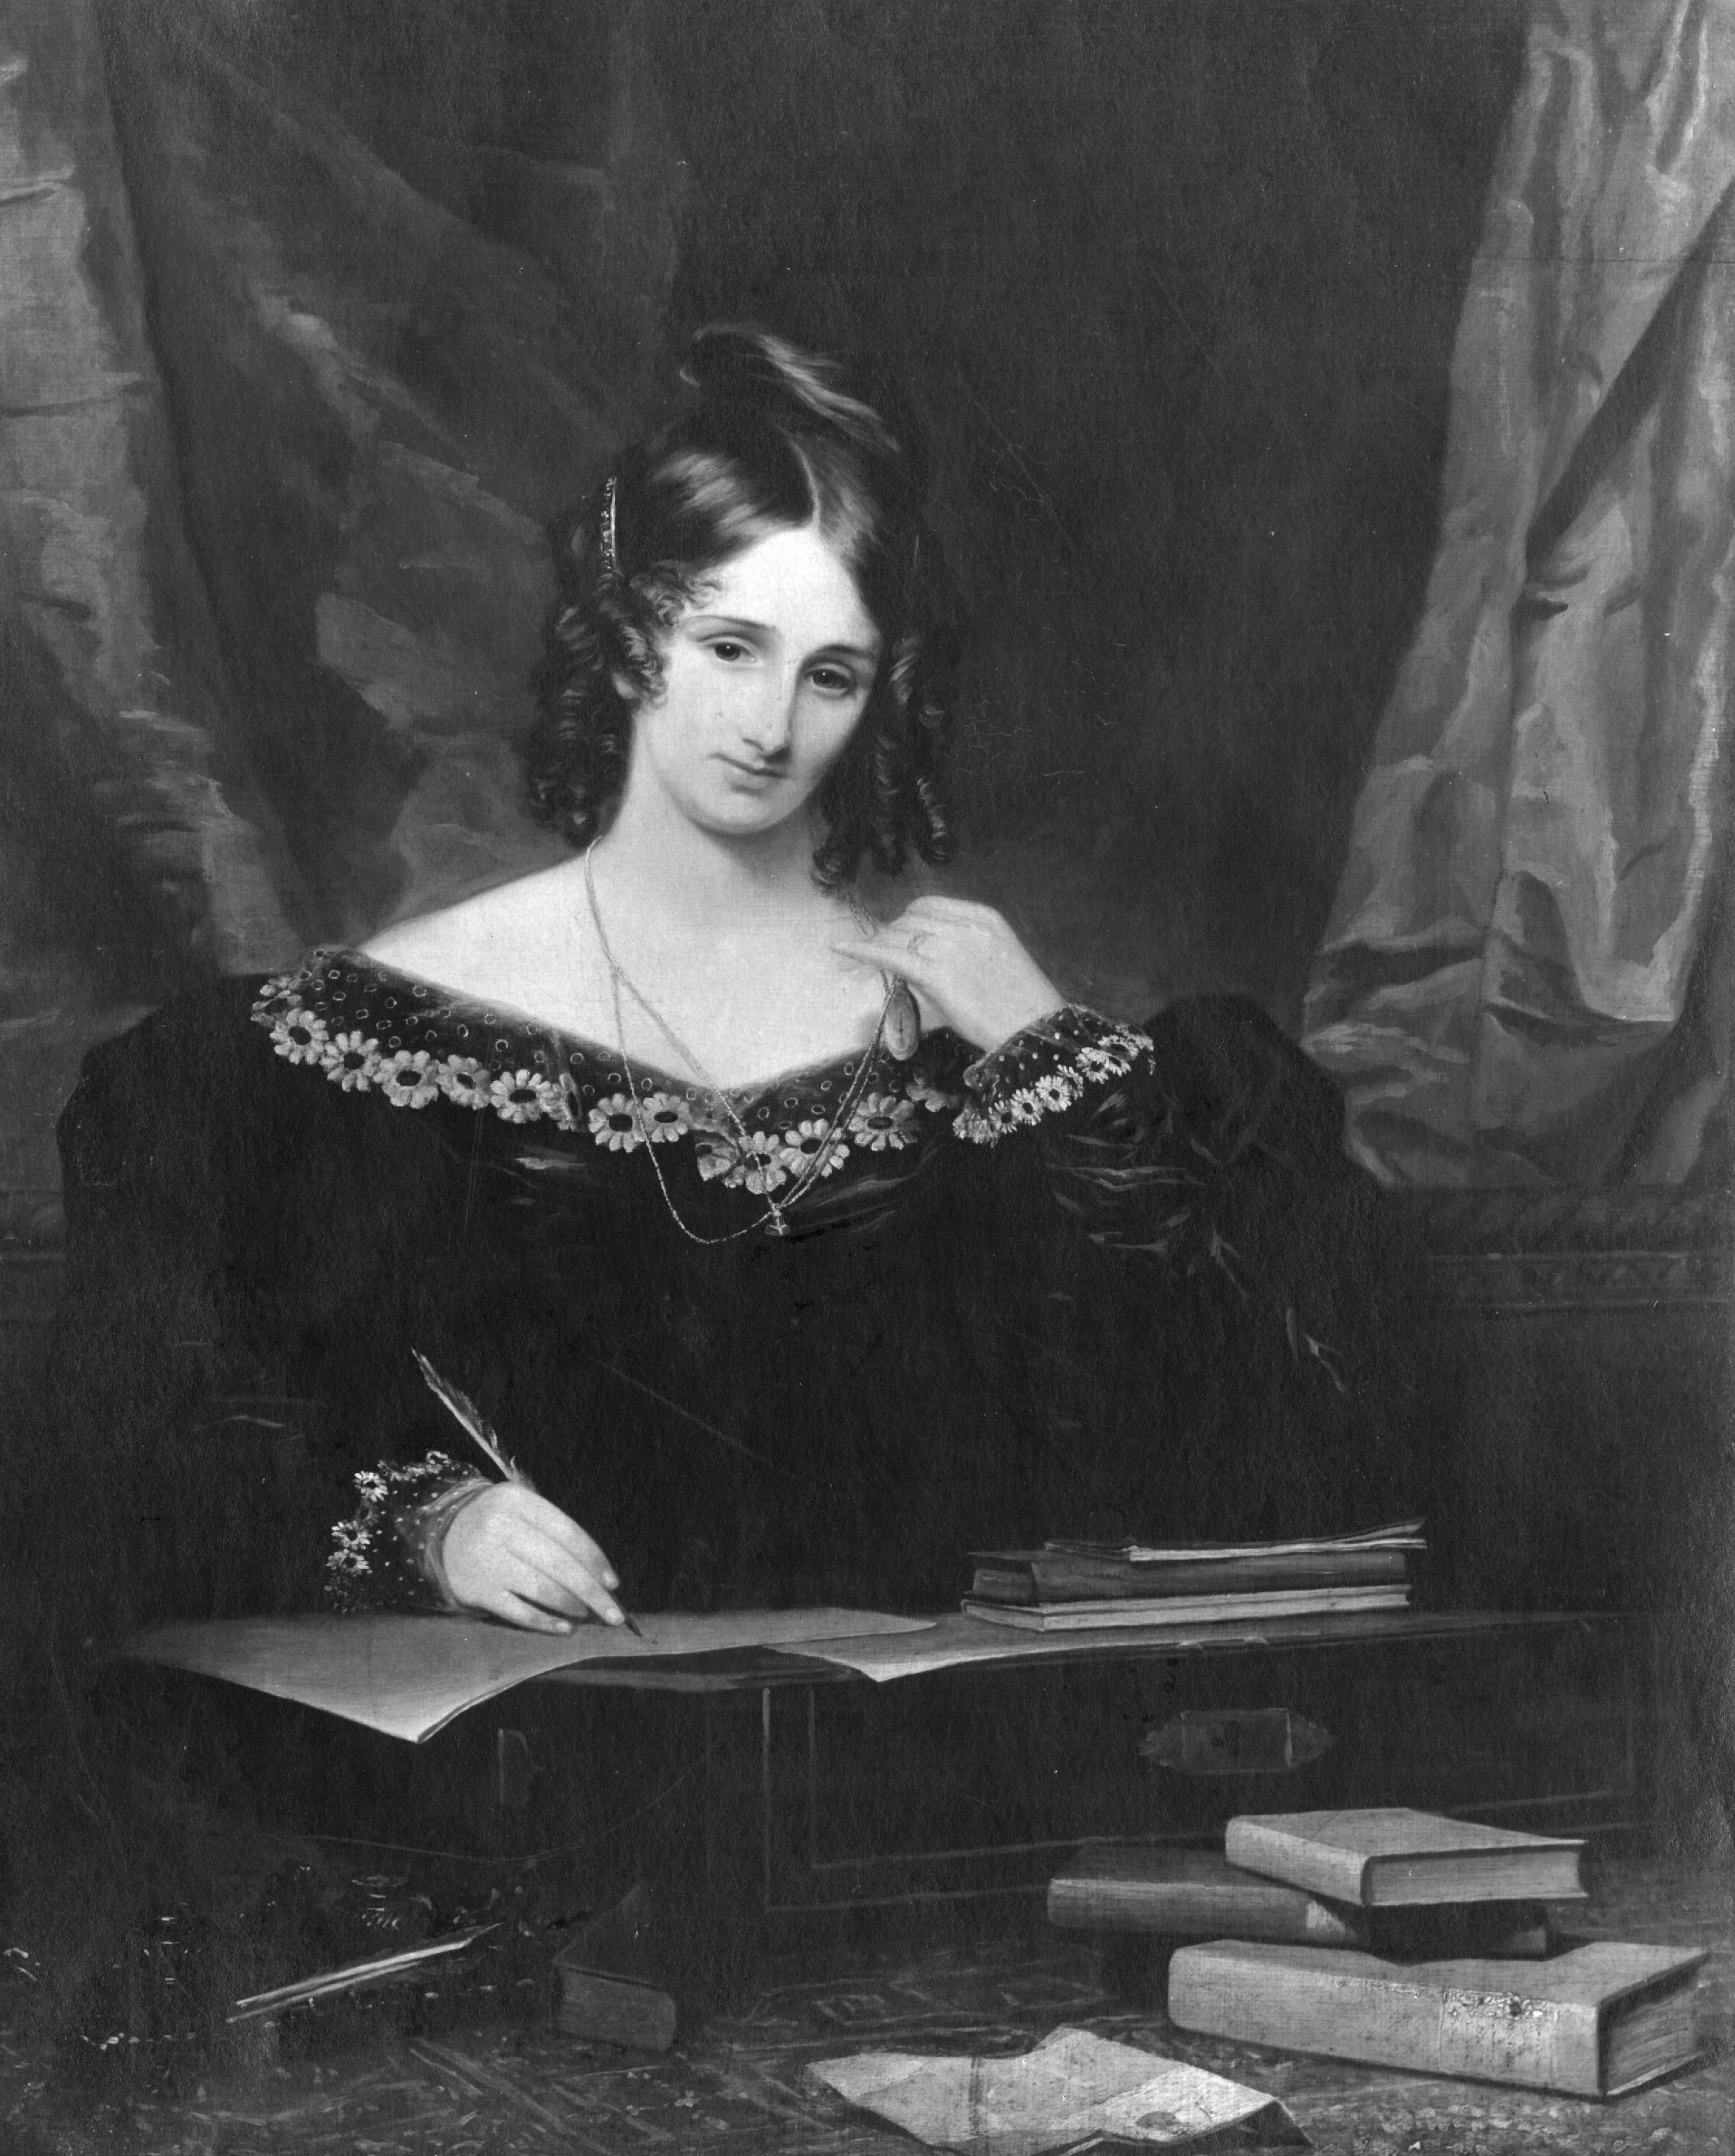 essay about mary wollstonecraft Author name course name instructor name date influence of mary w's vindication of the right woman on feminism during the late 18th century, mary wollstonecraft.